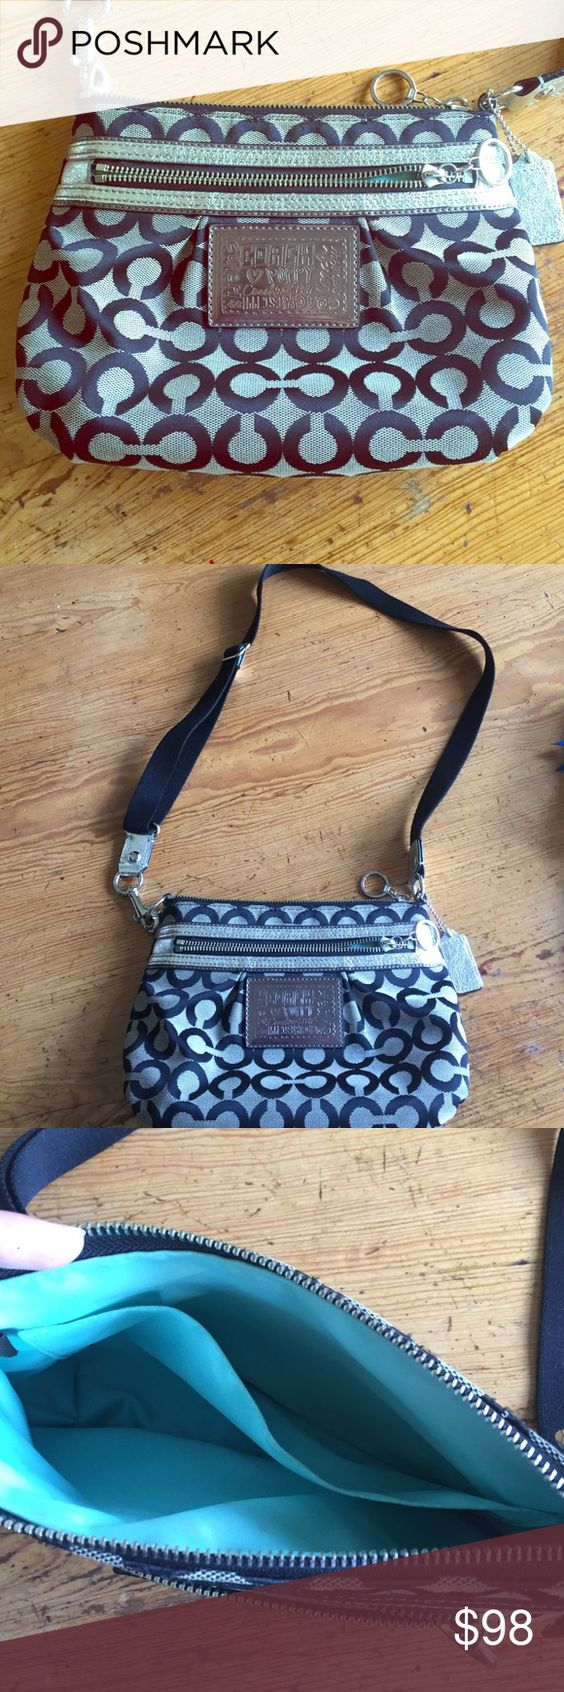 Coach Poppy purse Cross body Poppy purse with large zipper pouch and front zipper pouch. Good condition. Coach Bags Crossbody Bags